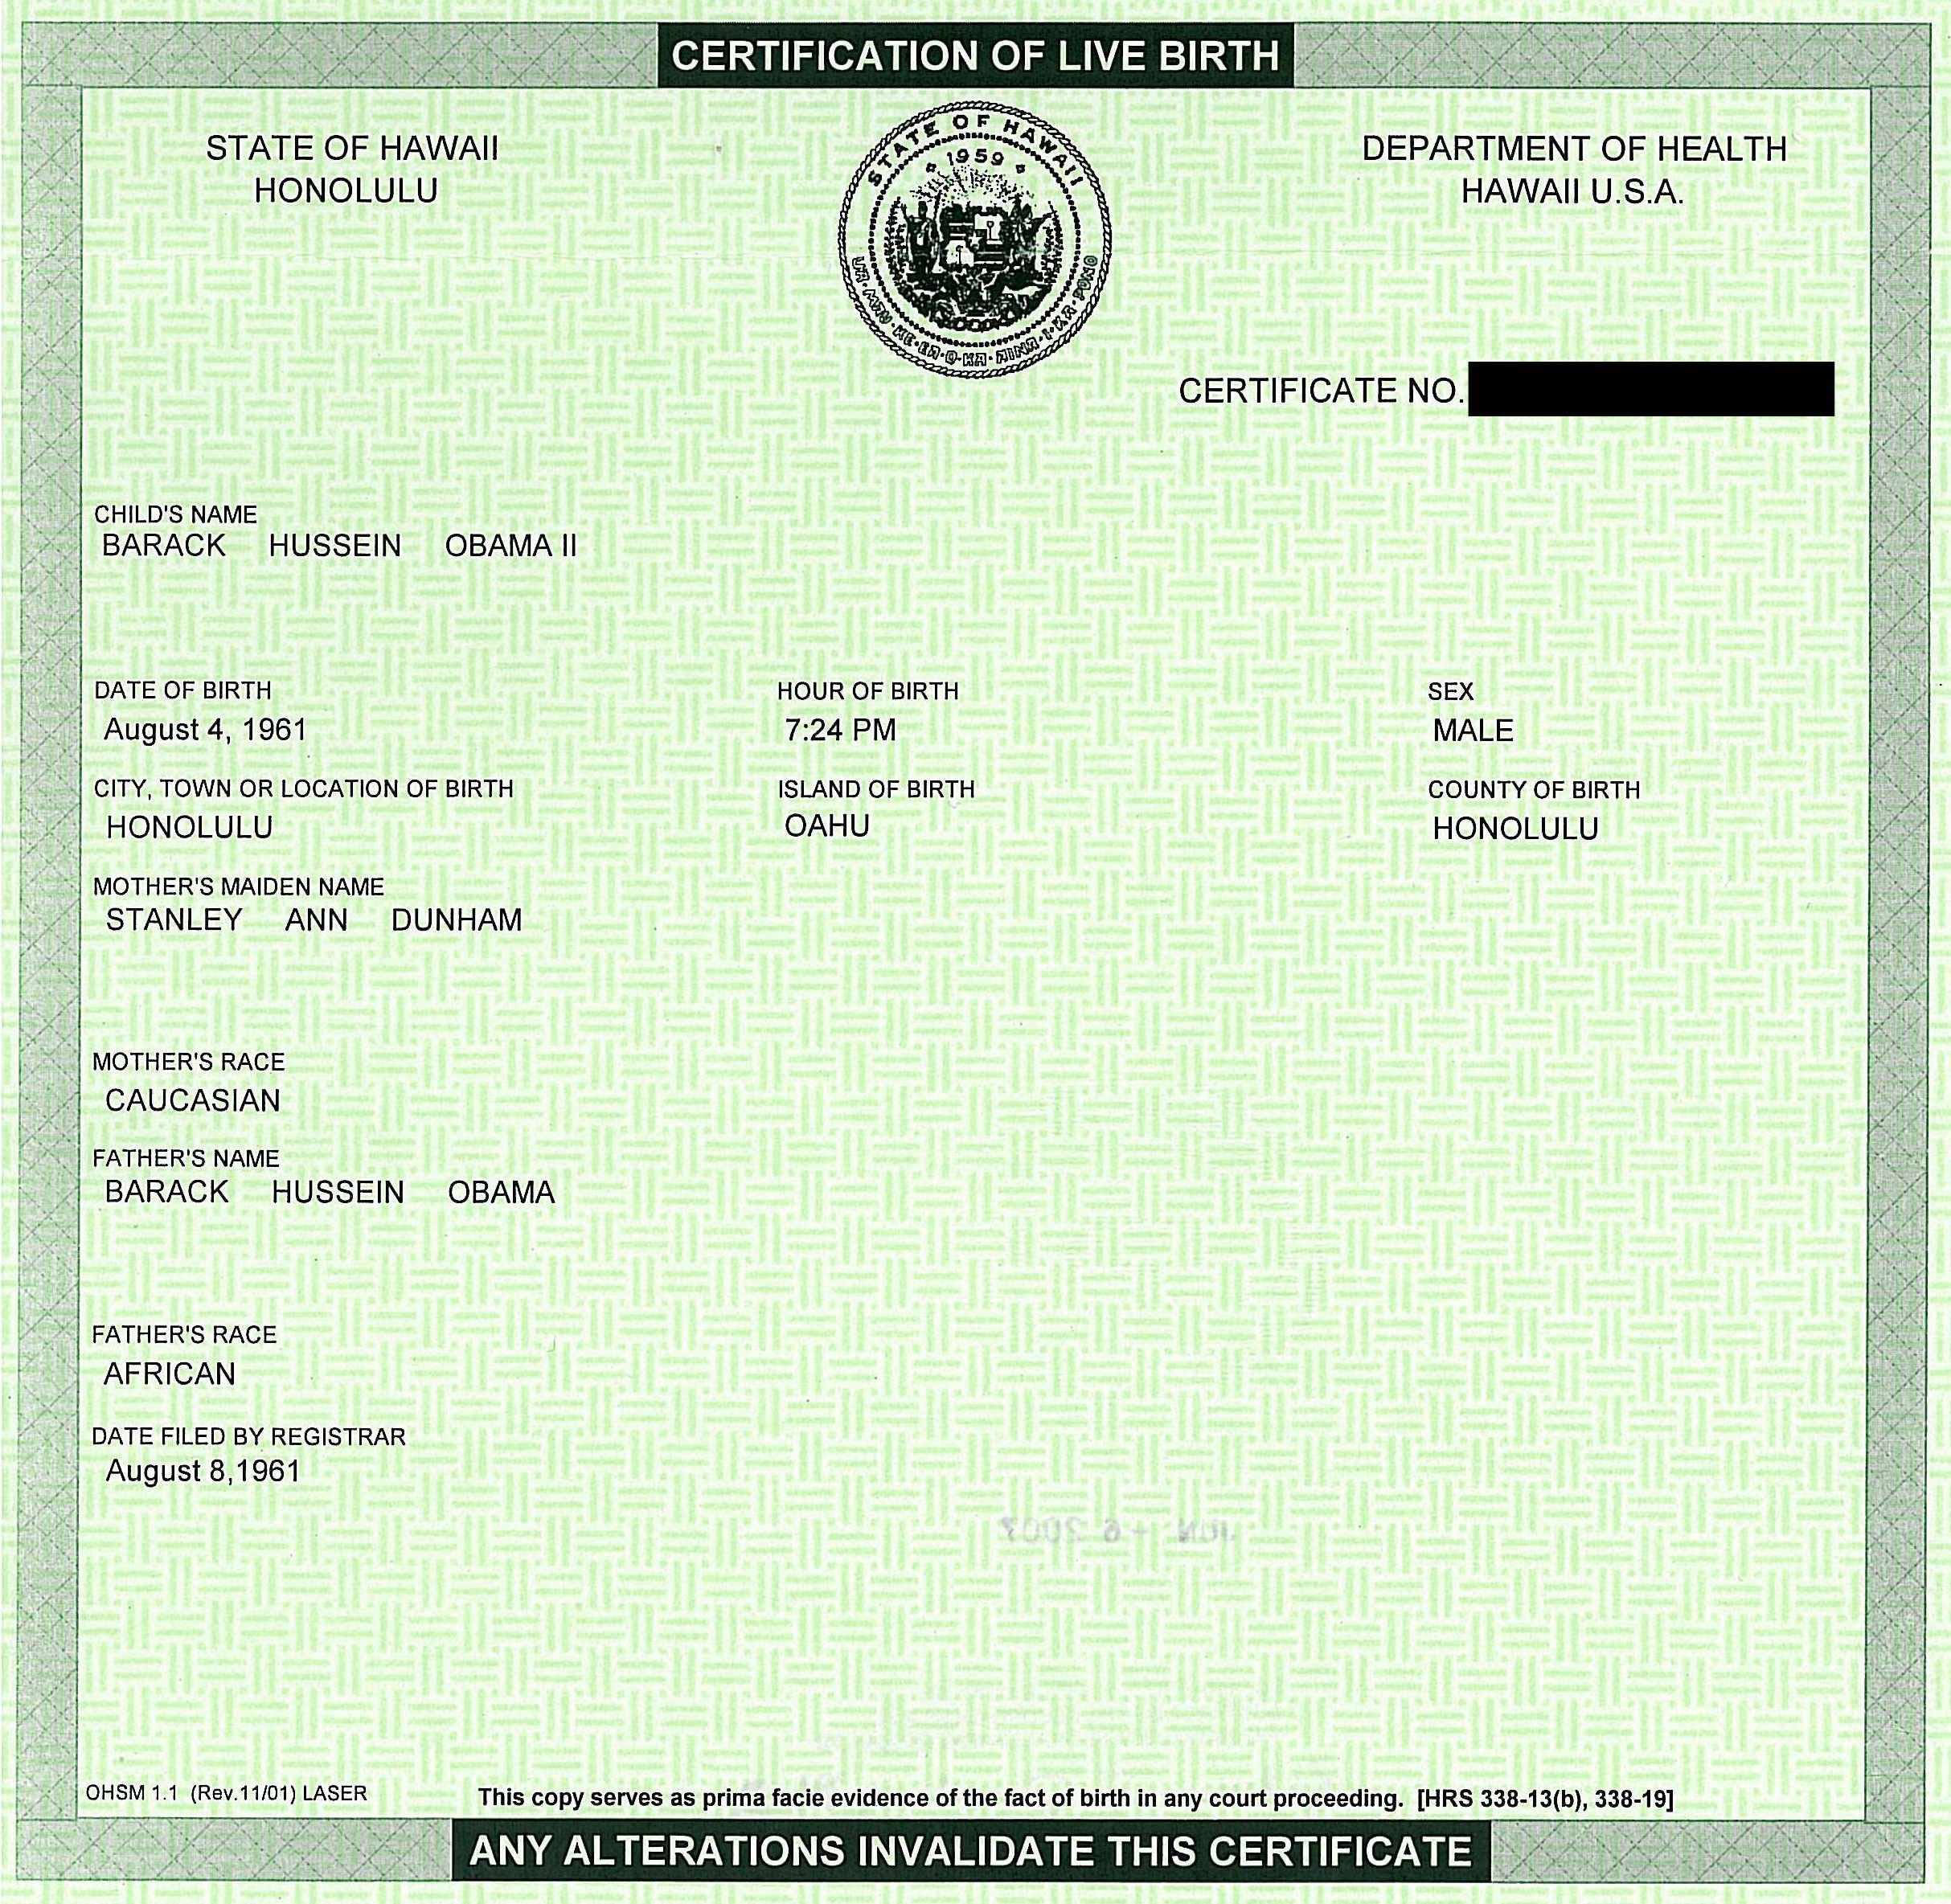 White house releases obamas birth certificate cnn political see obamas certification of live birth aiddatafo Gallery